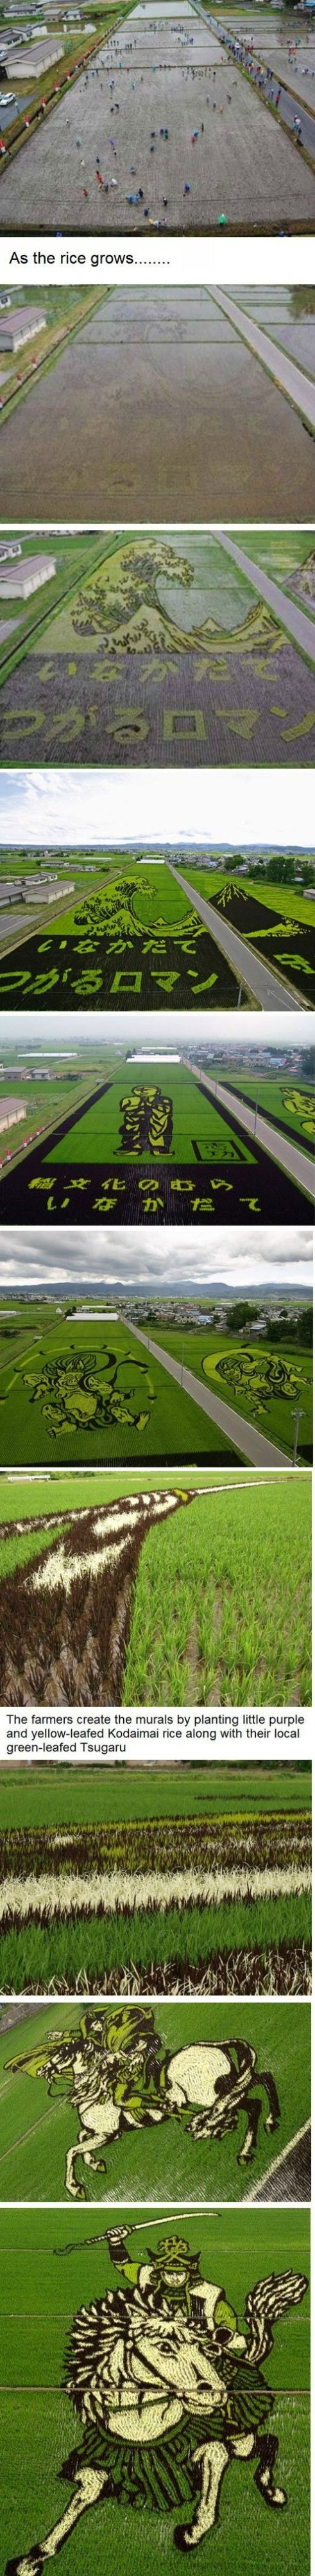 Awesome Rice Field Art!